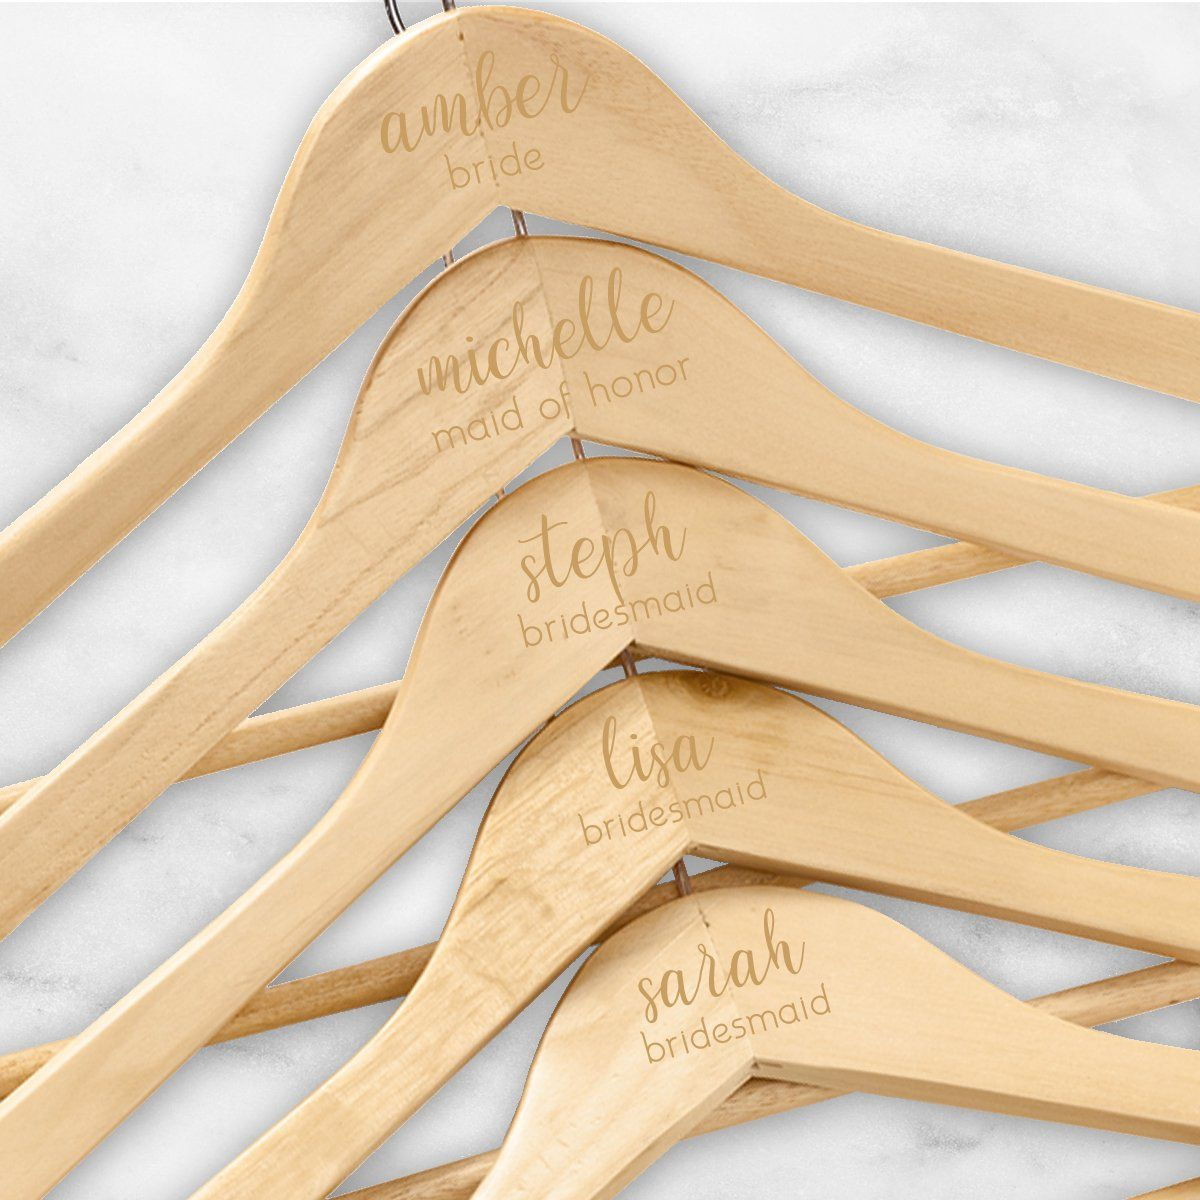 Personalized-BrideBridesmaid-Wooden-Hangers-Set-of-5